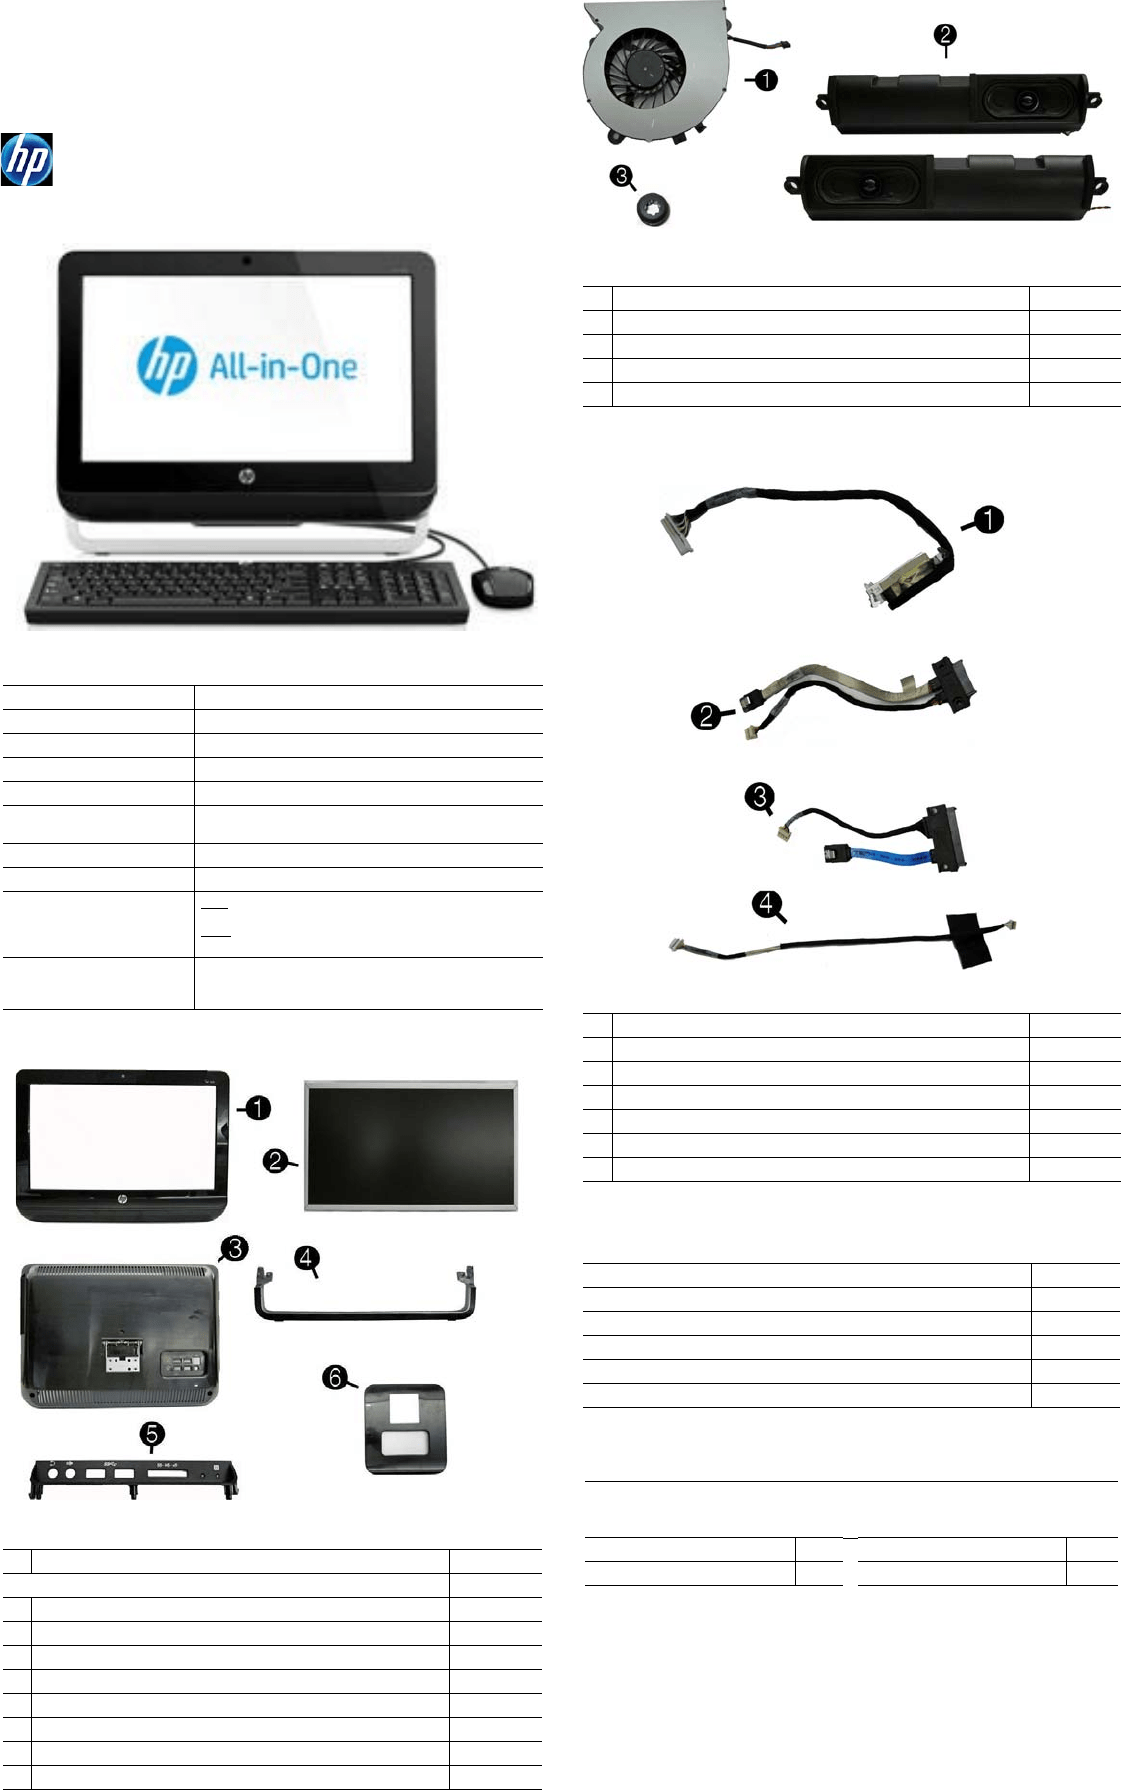 Hp 1105 All In One Desktop Pc Reference Guide Elwood2 AIO IPSM